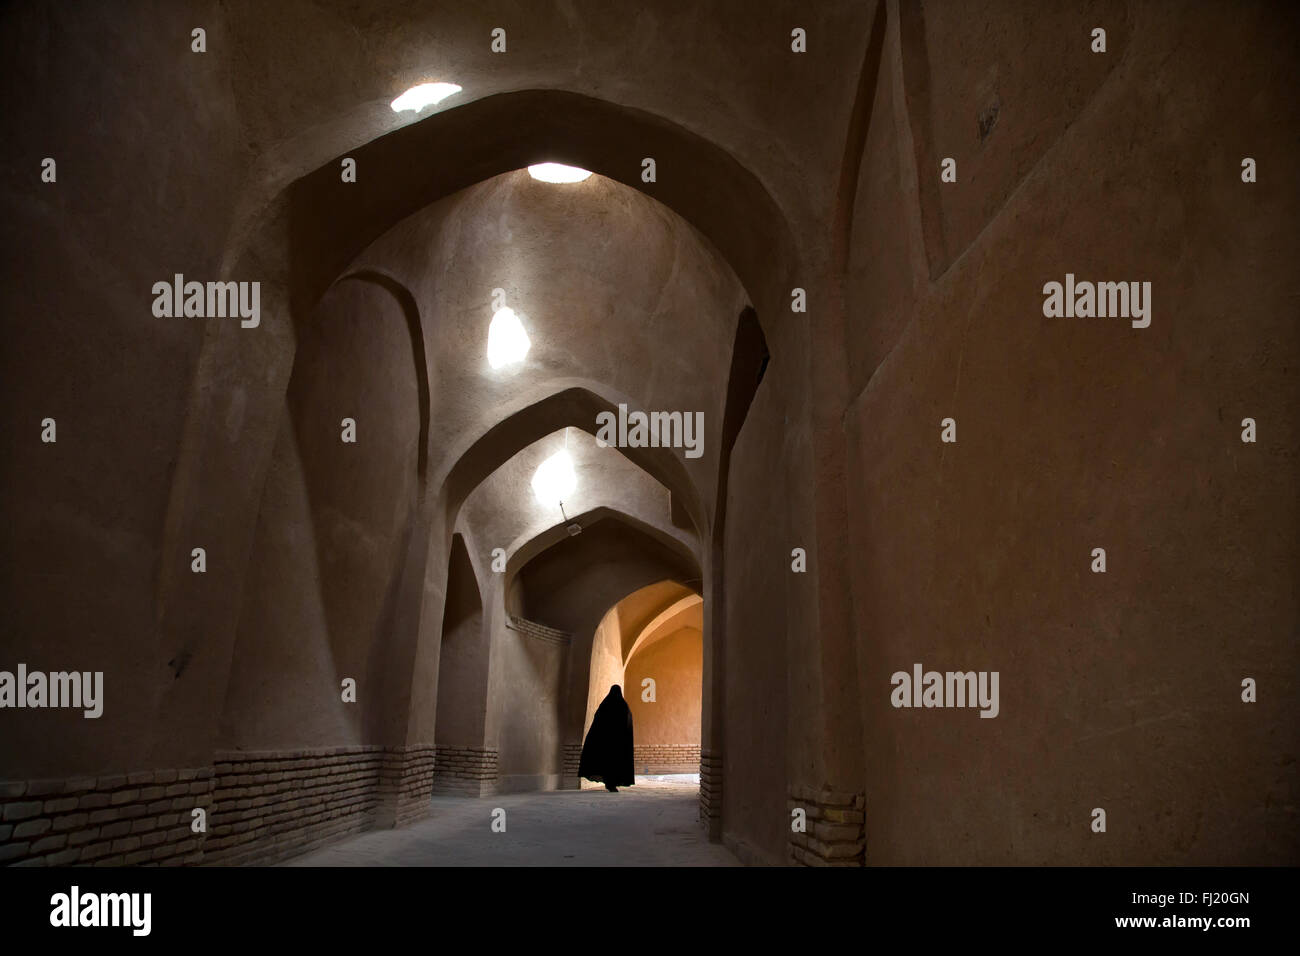 Veiled Iranian woman with niqab in the streets of Yazd, Iran - Stock Image